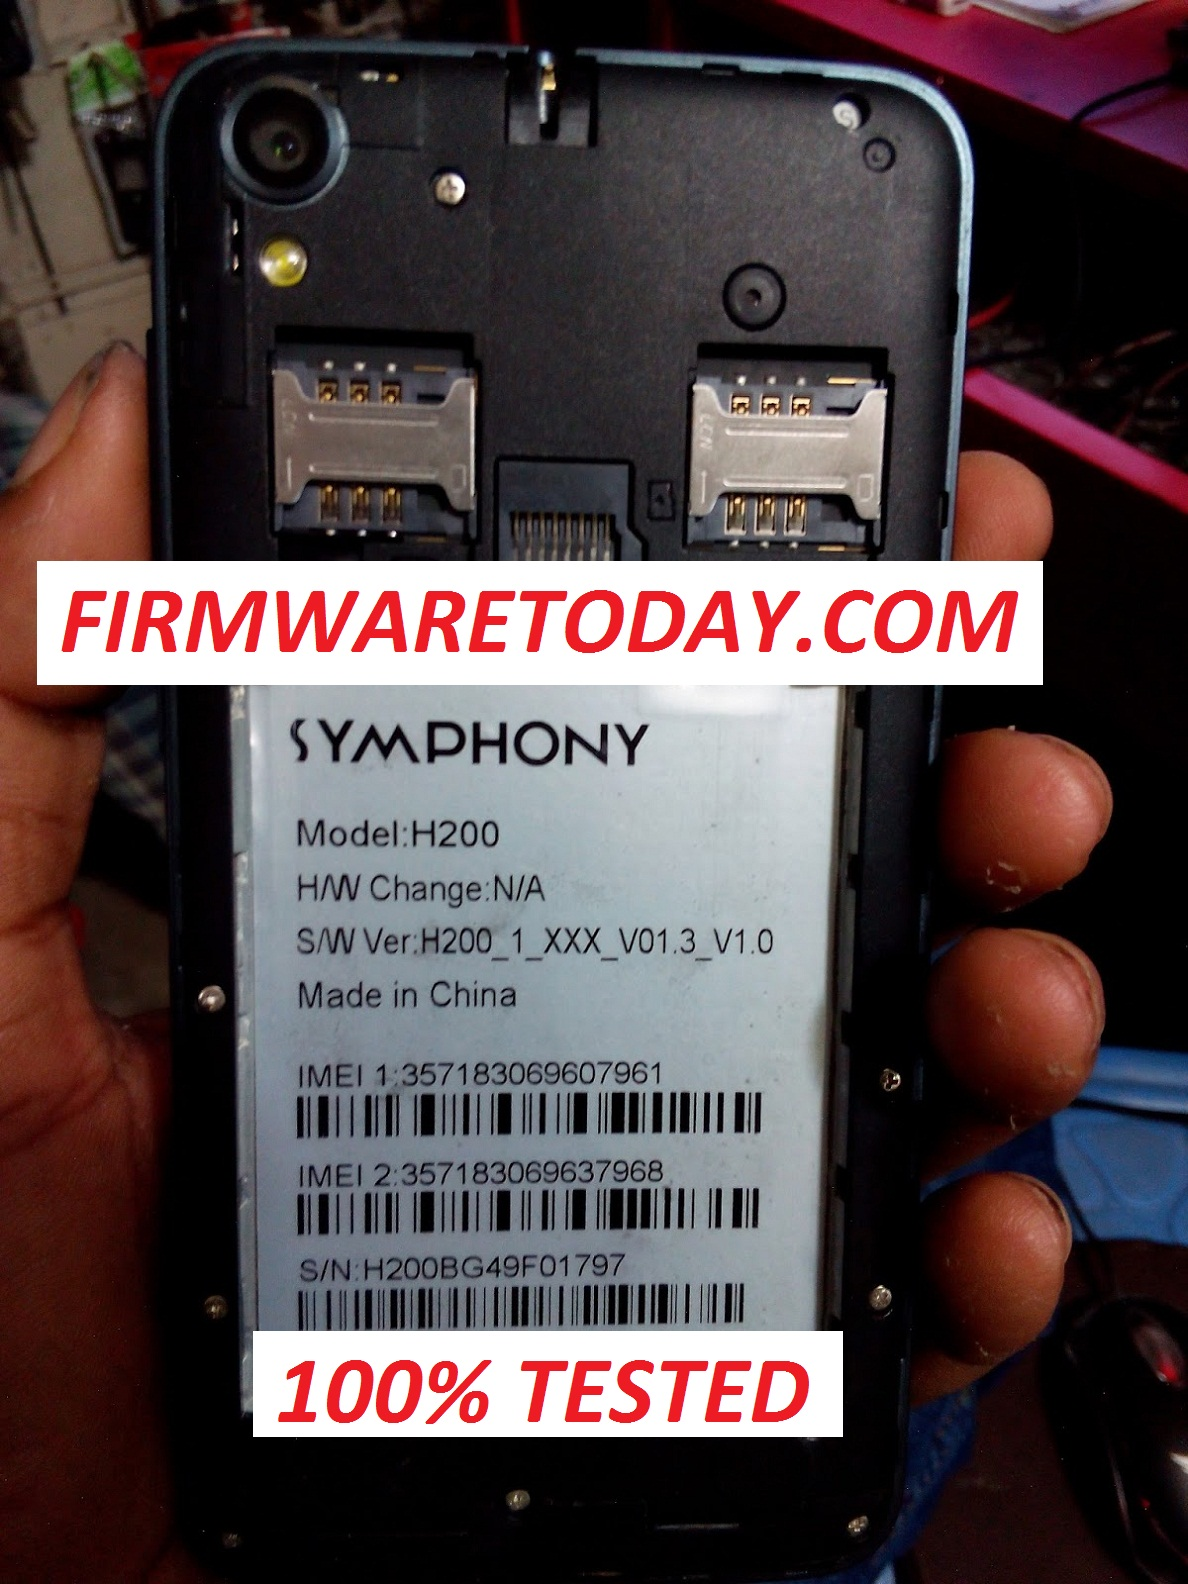 SYMPHONY H200 OFFICIAL FIRMWARE 3rd VERSION UPDATE(H200_1_XXX_V01.3_V1.0) 2000% TESTED BY FIRMWARETODAY.COM